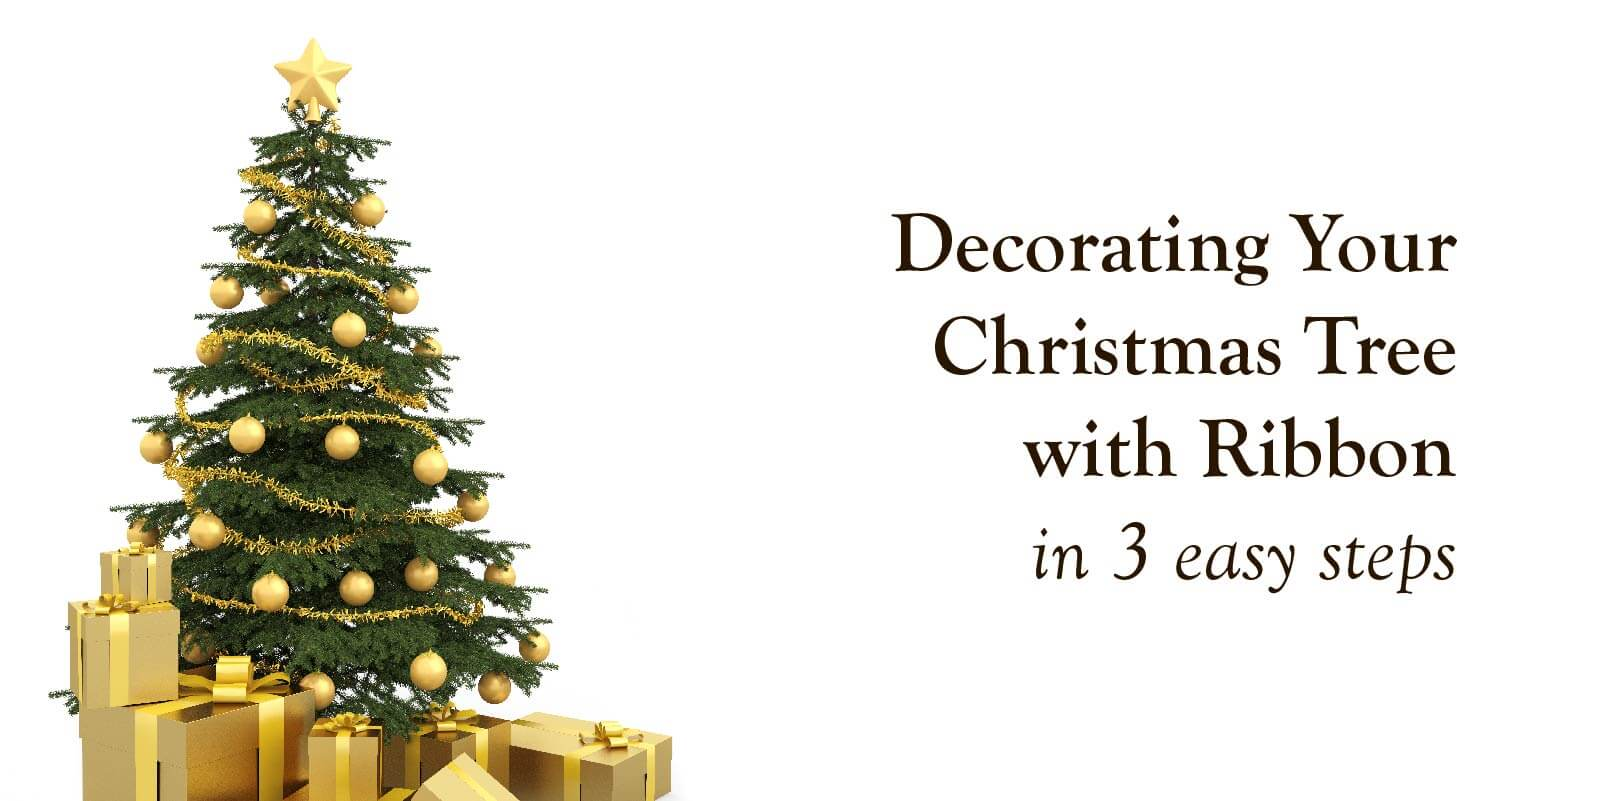 Decorating Your Christmas Tree With Ribbon Dallas Tx